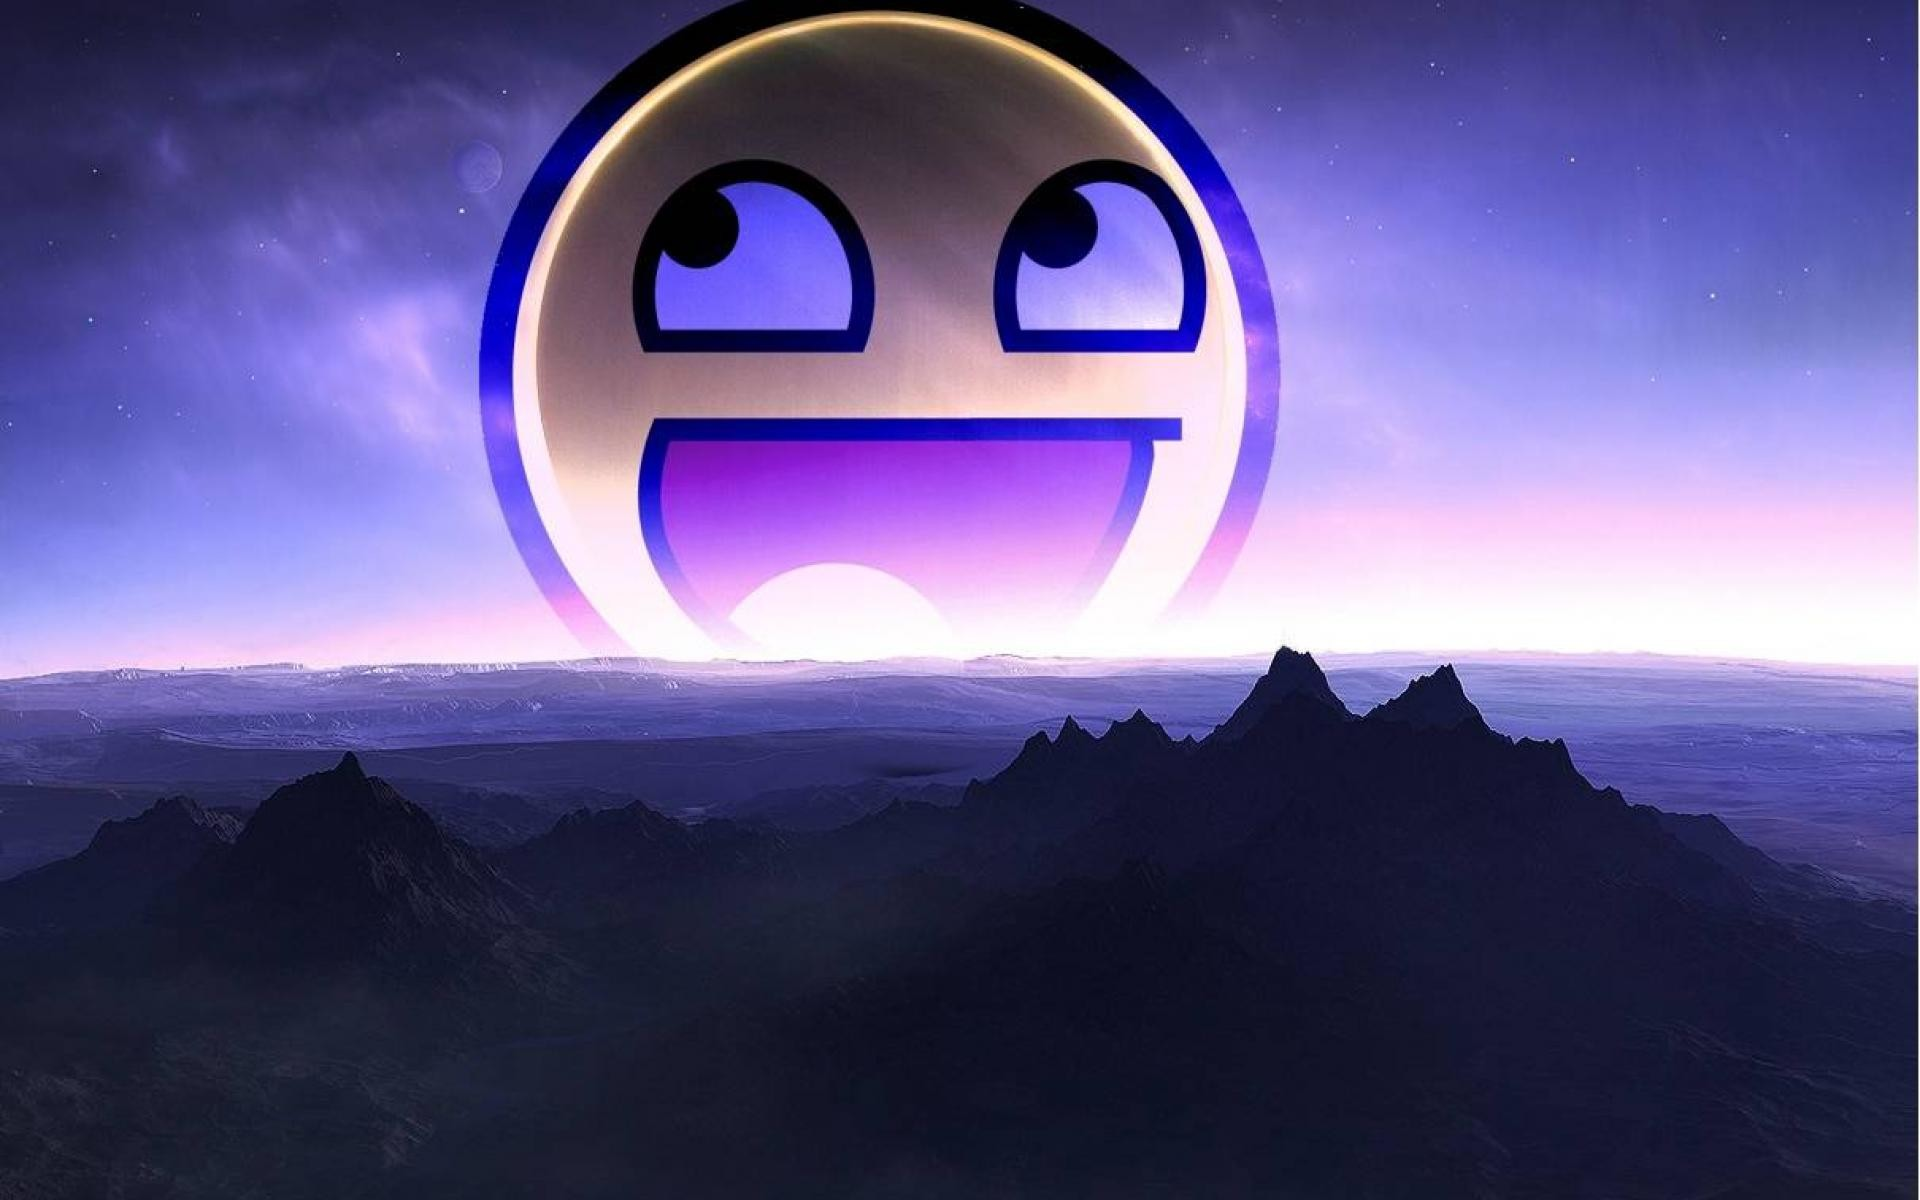 Smiley Faces Wallpaper ·①